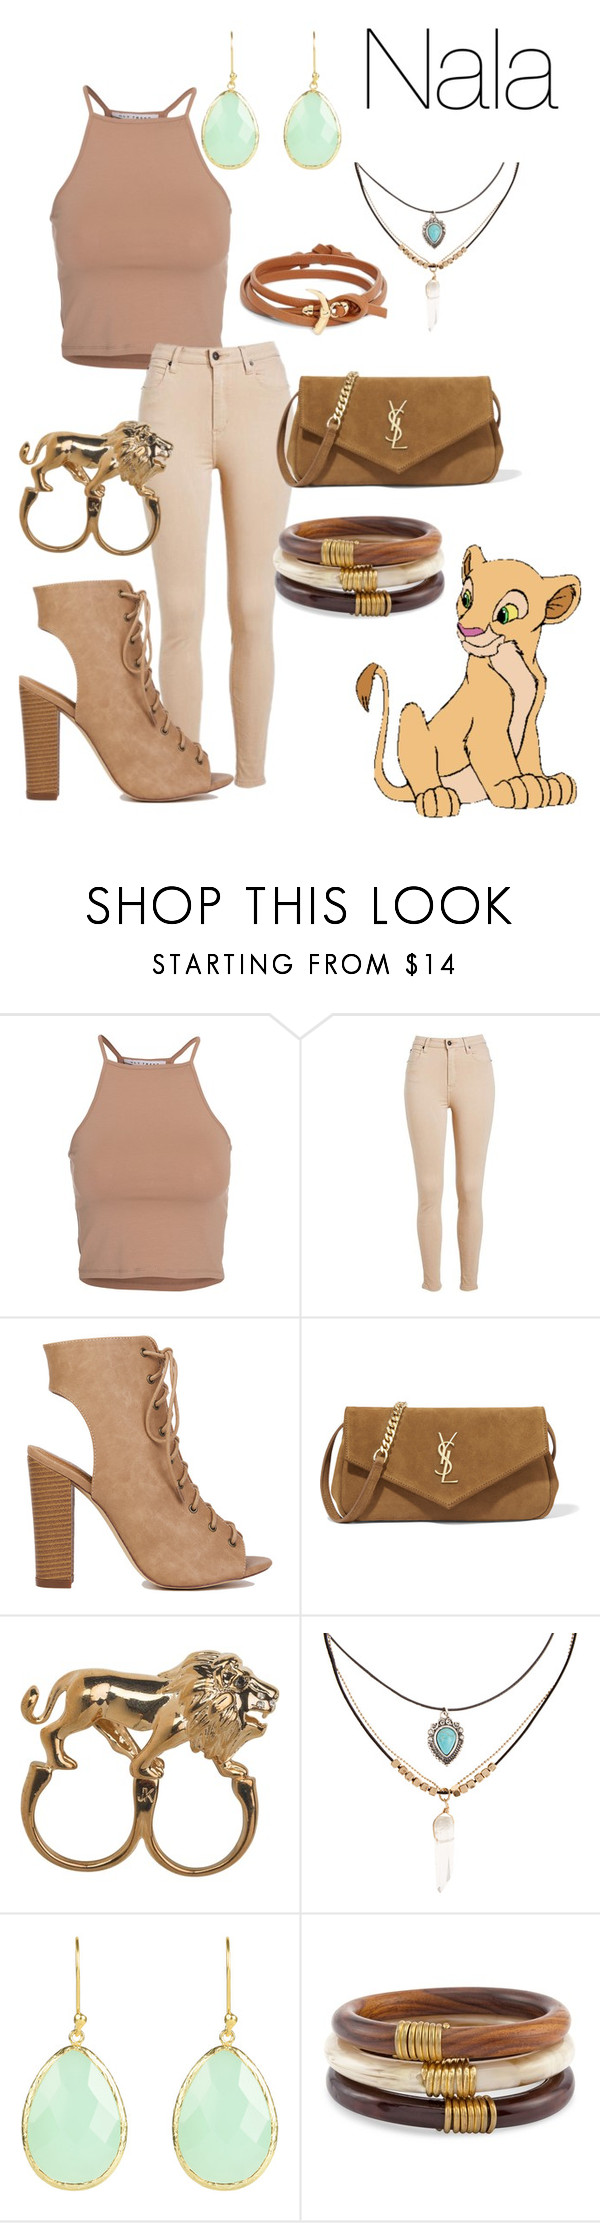 """Nala"" by lauren-e-carroll ❤ liked on Polyvore featuring NLY Trend, Yves Saint Laurent, Stussy, Accessorize, Chico's, Tory Burch, disney, disneybound, Nala and thelionking"